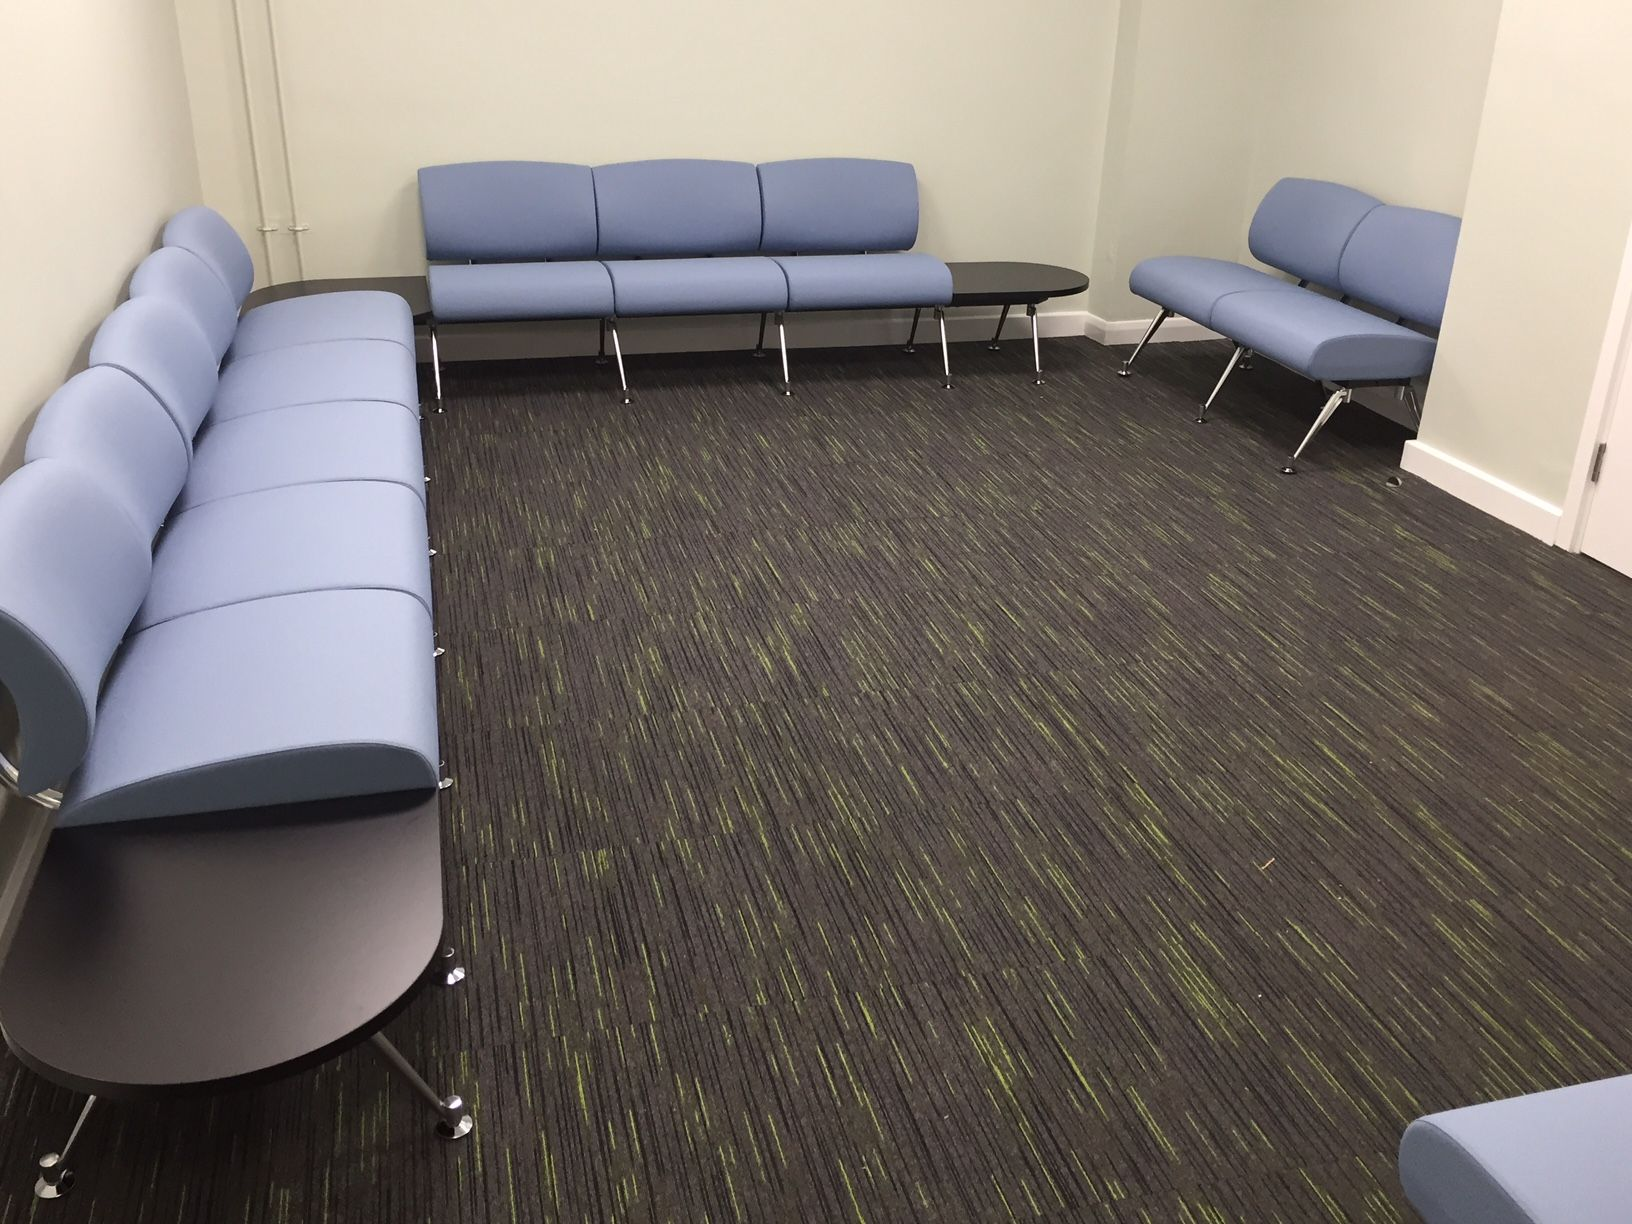 Atrium Bench Seating Stylish Waiting Room Furniture Rosehill Waiting Room Furniture Seating Room